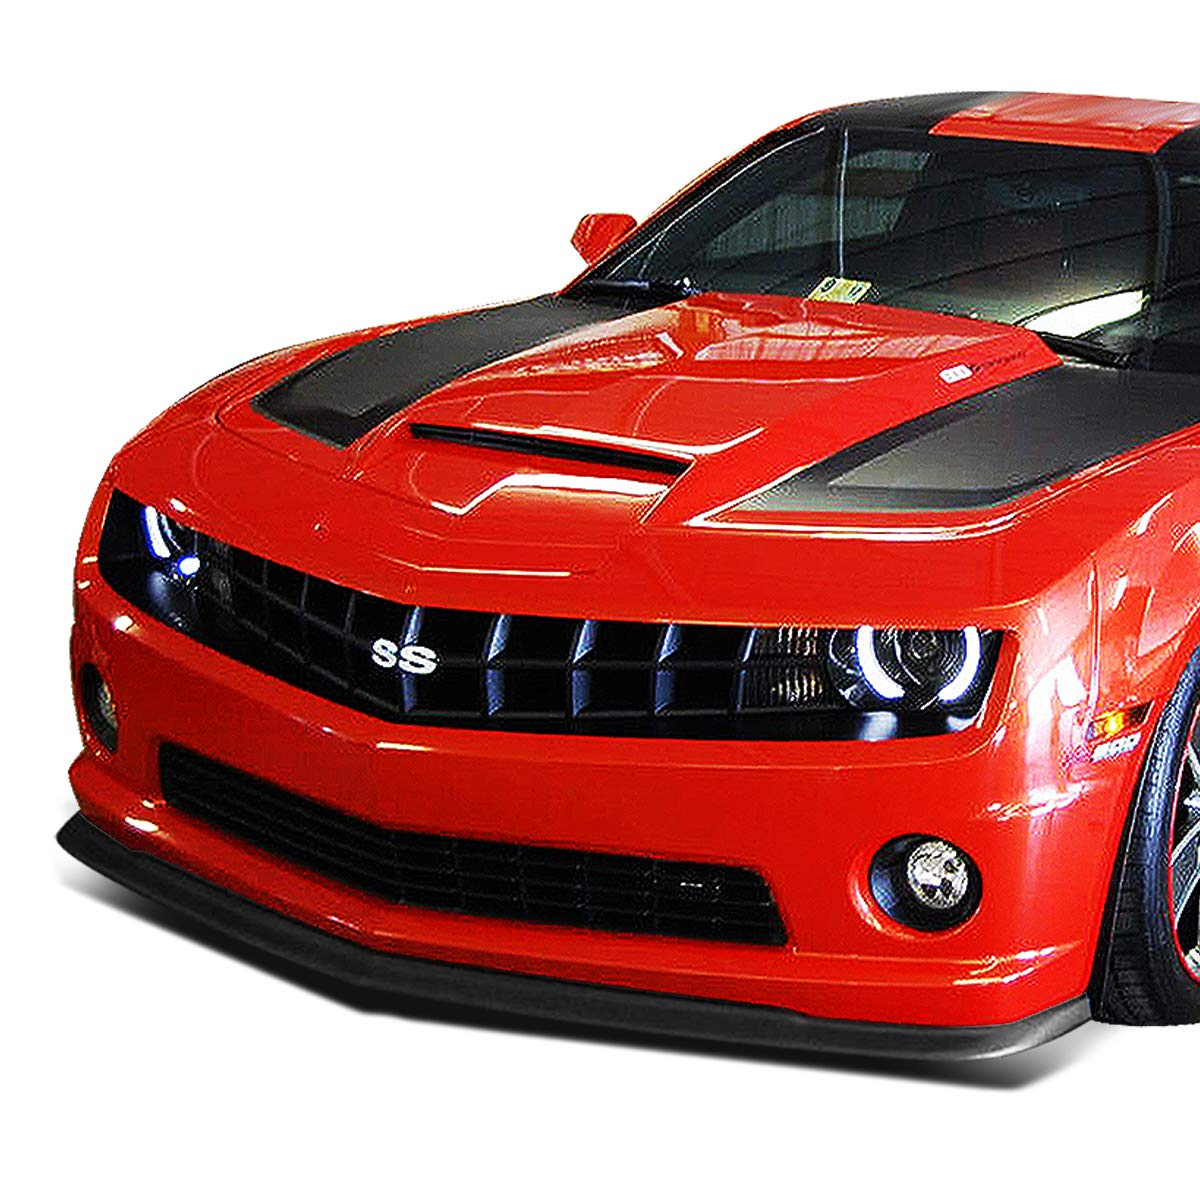 ZL1 Style Front Bumper Lip Splitter Chin Spoiler Wing Body Kit for 10-13 Chevy Camaro 1ss//2ss//ss